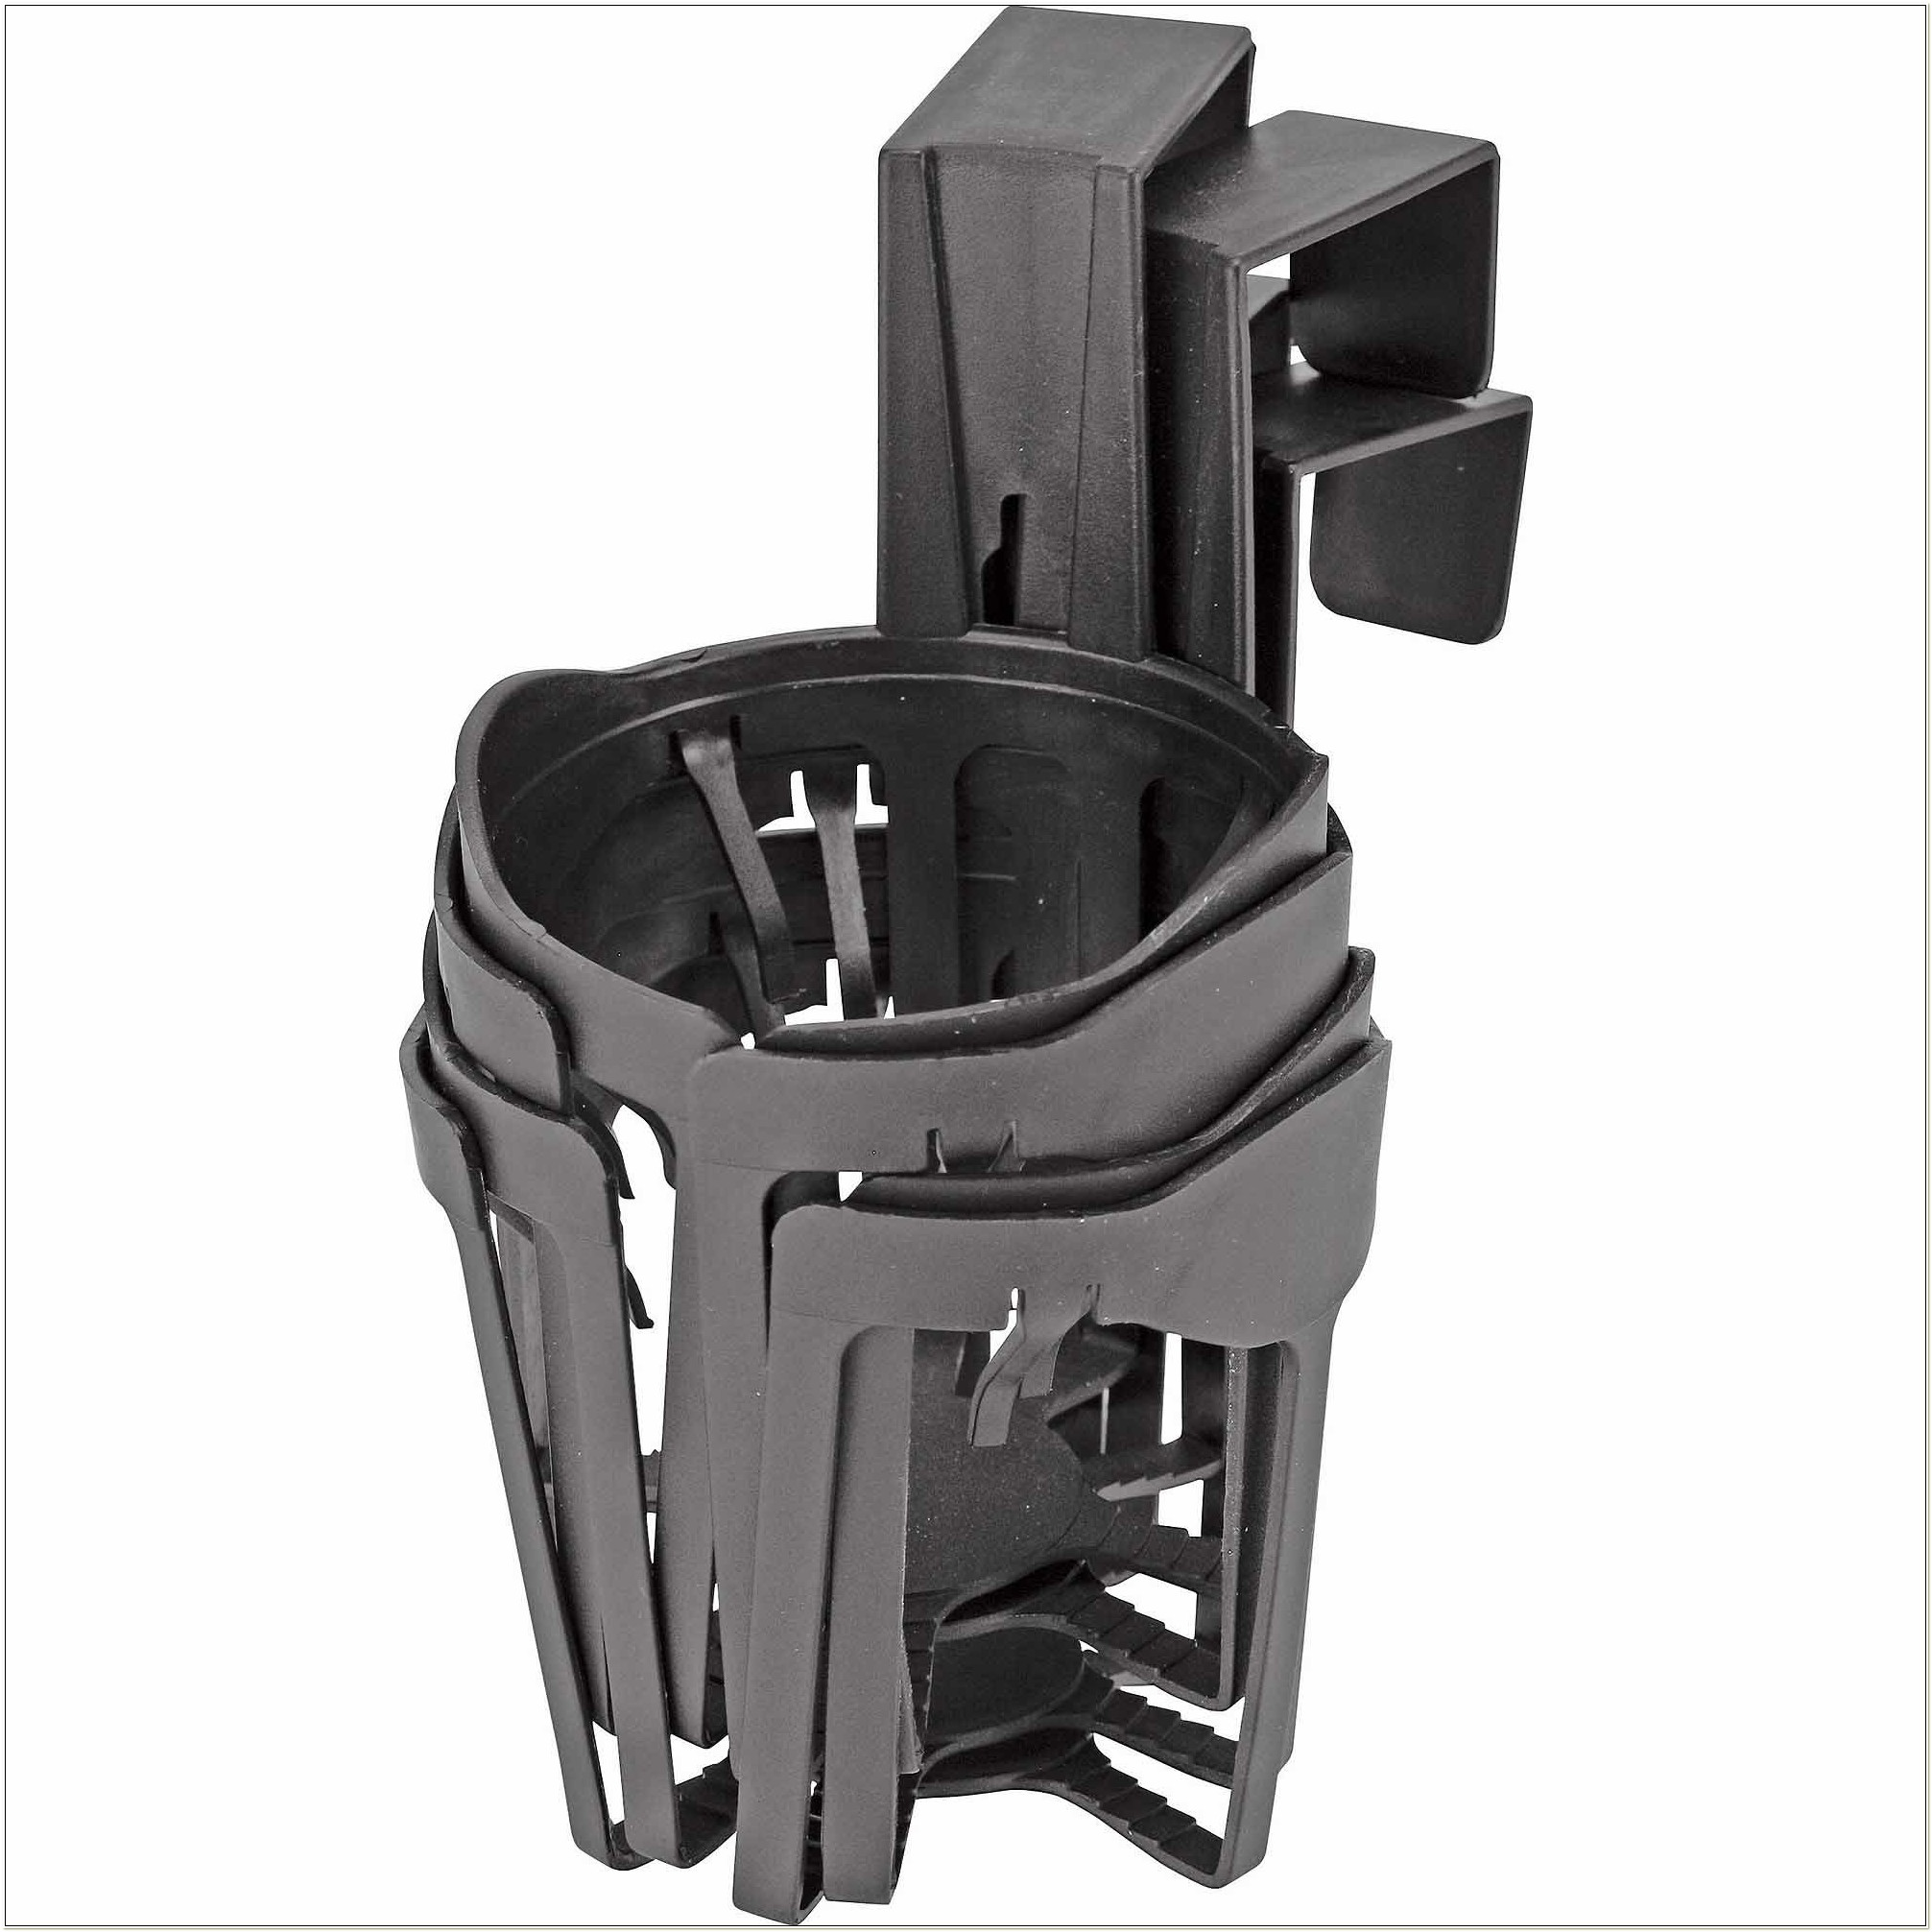 Wheelchair Cup Holder Walmart